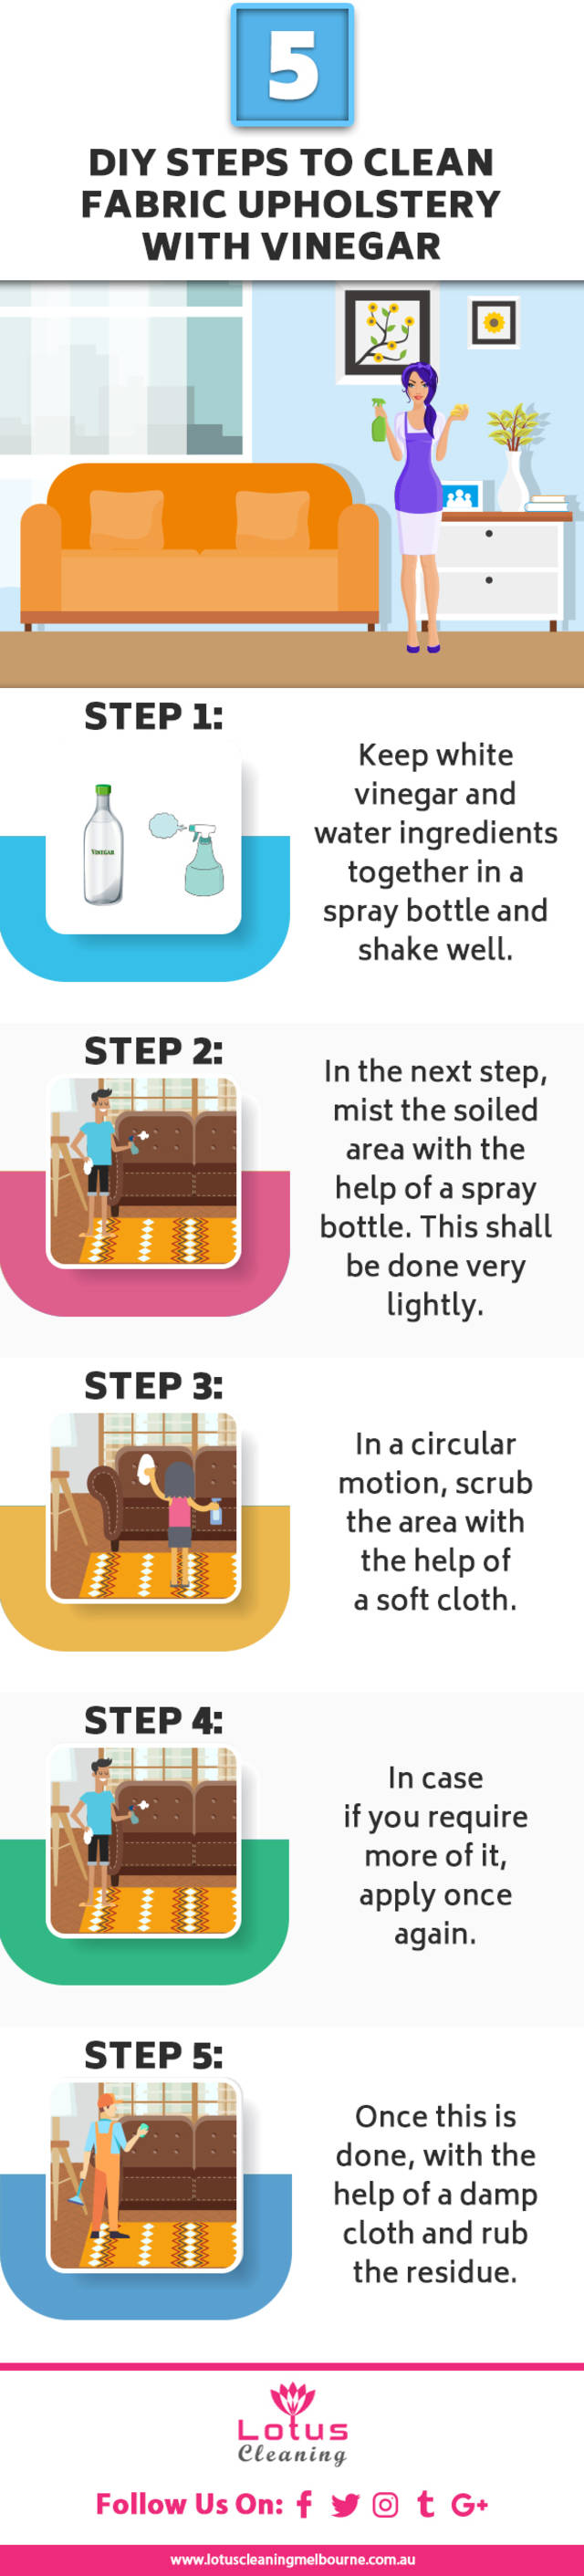 5 diy steps to clean fabric upholstery with vinegar